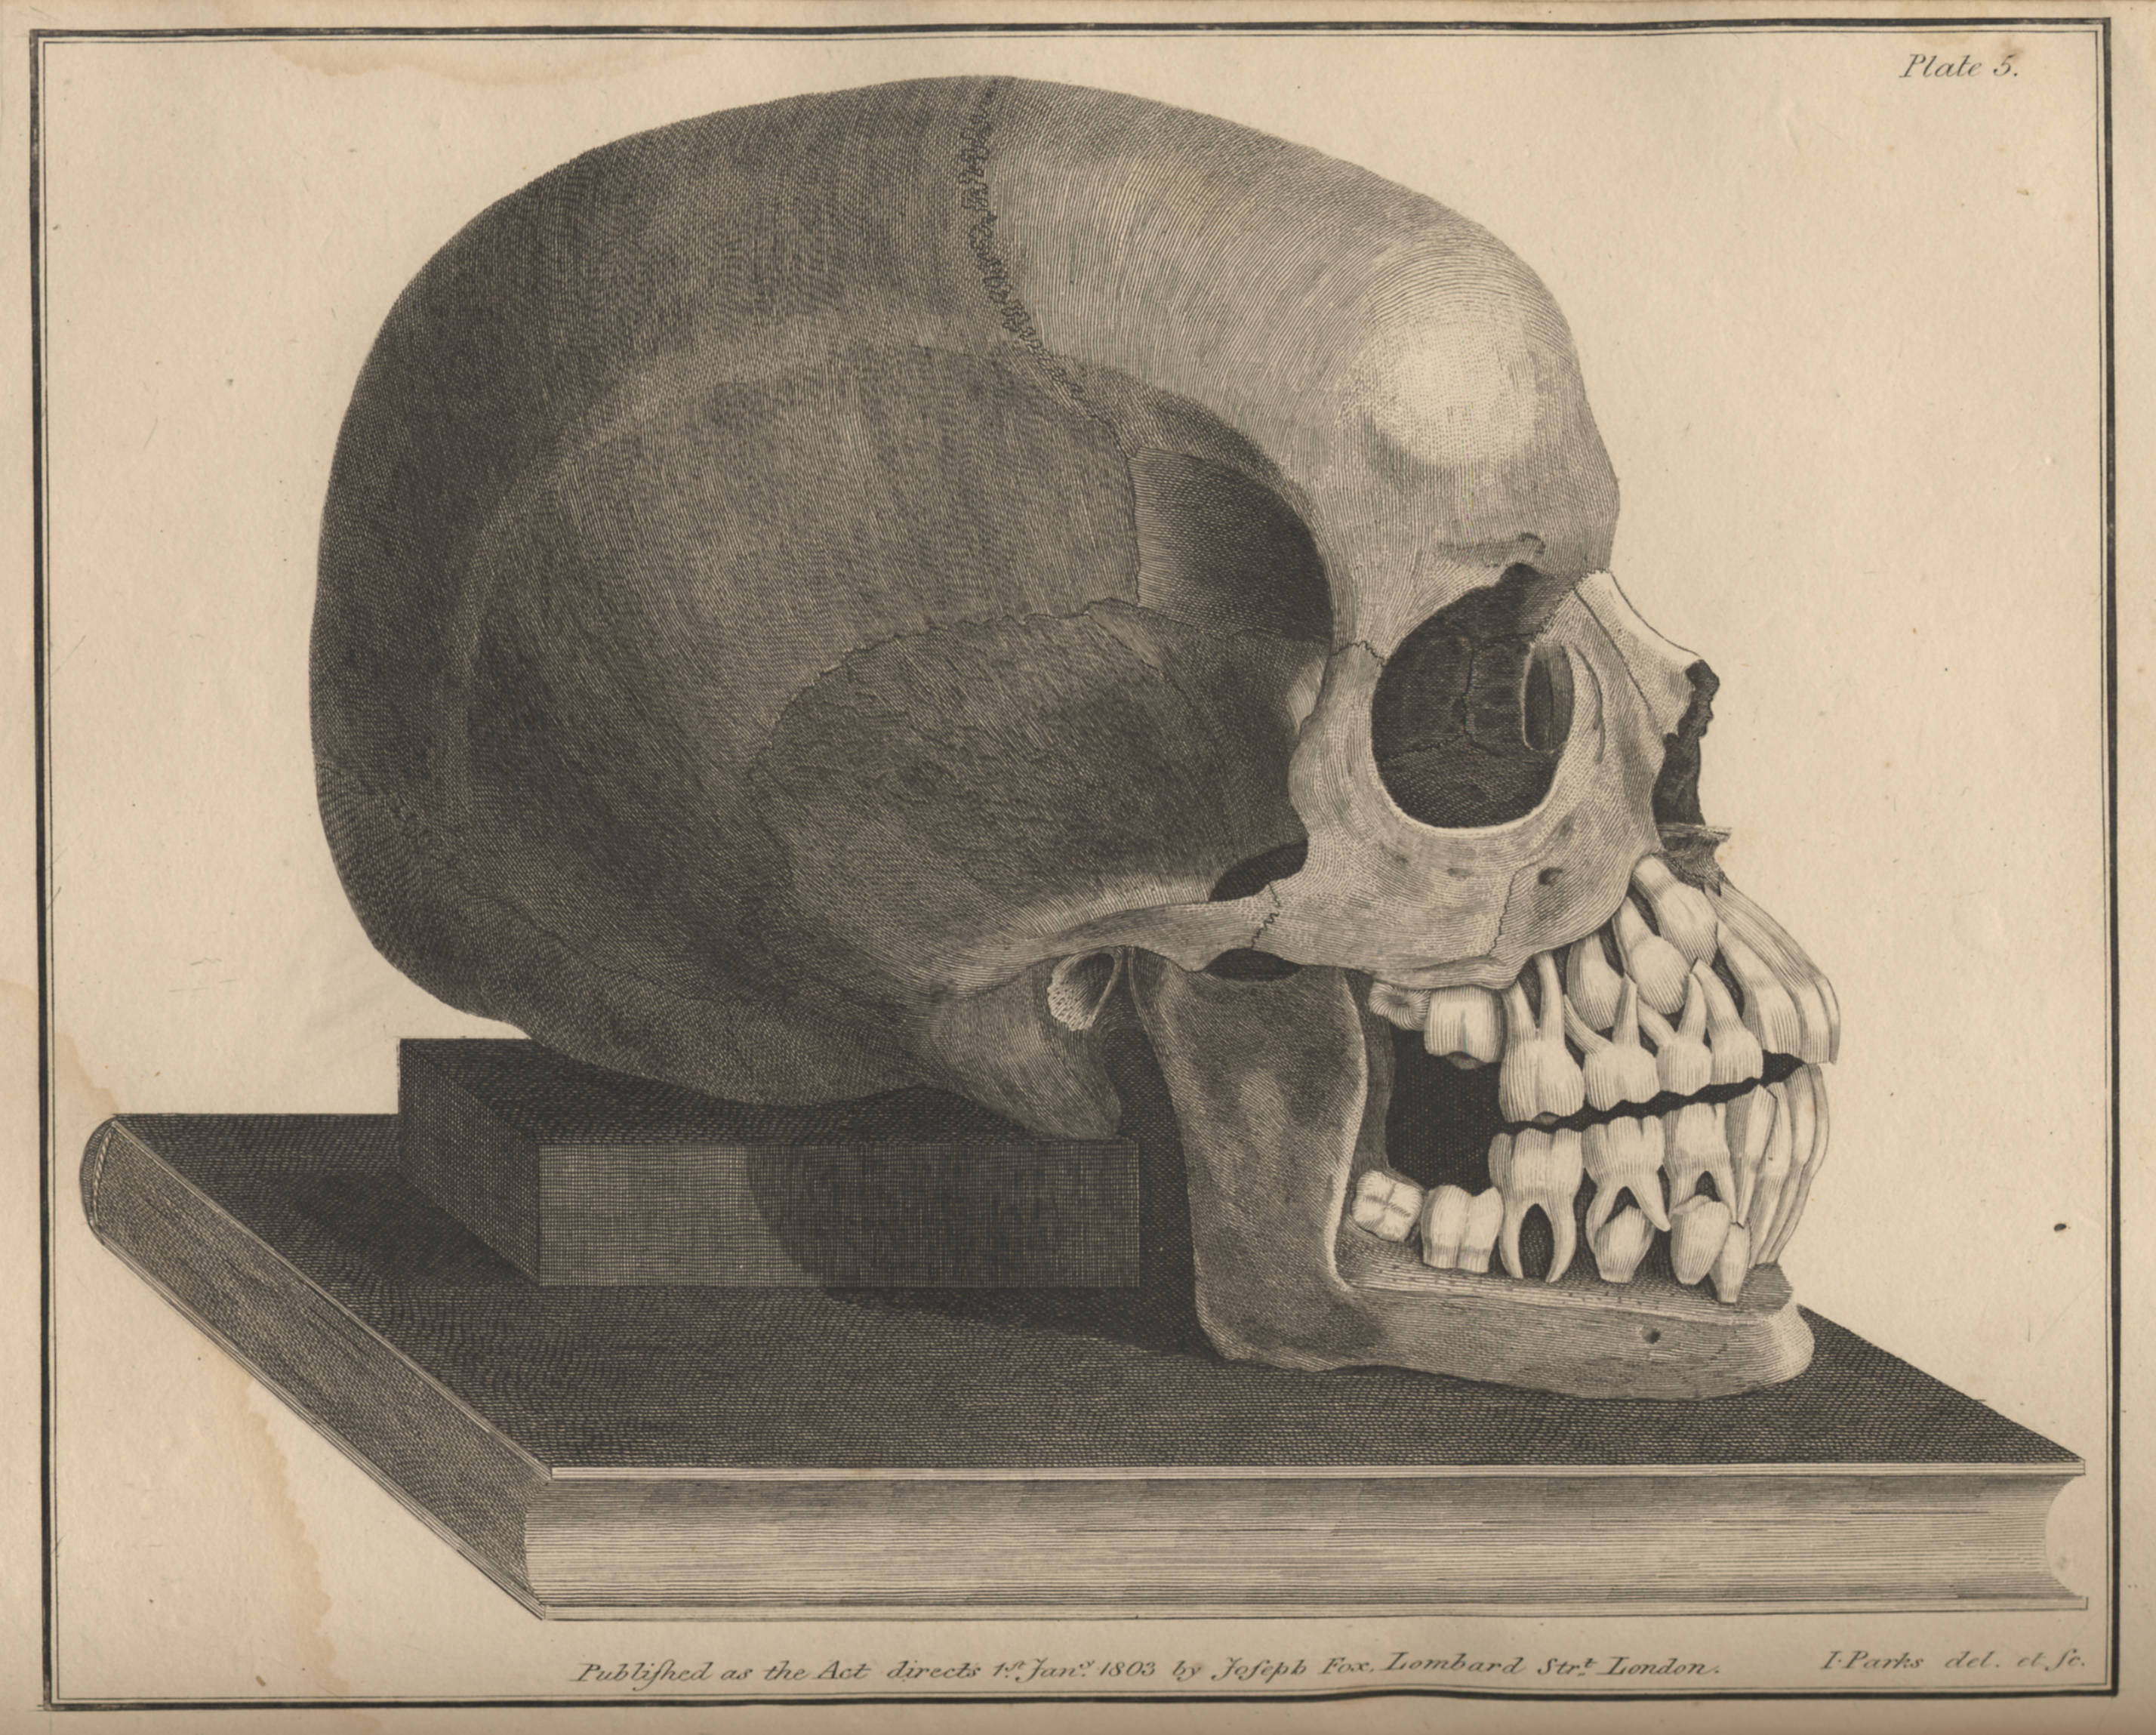 Engraved plate in Joseph Fox's The natural history and diseases of the human teeth.